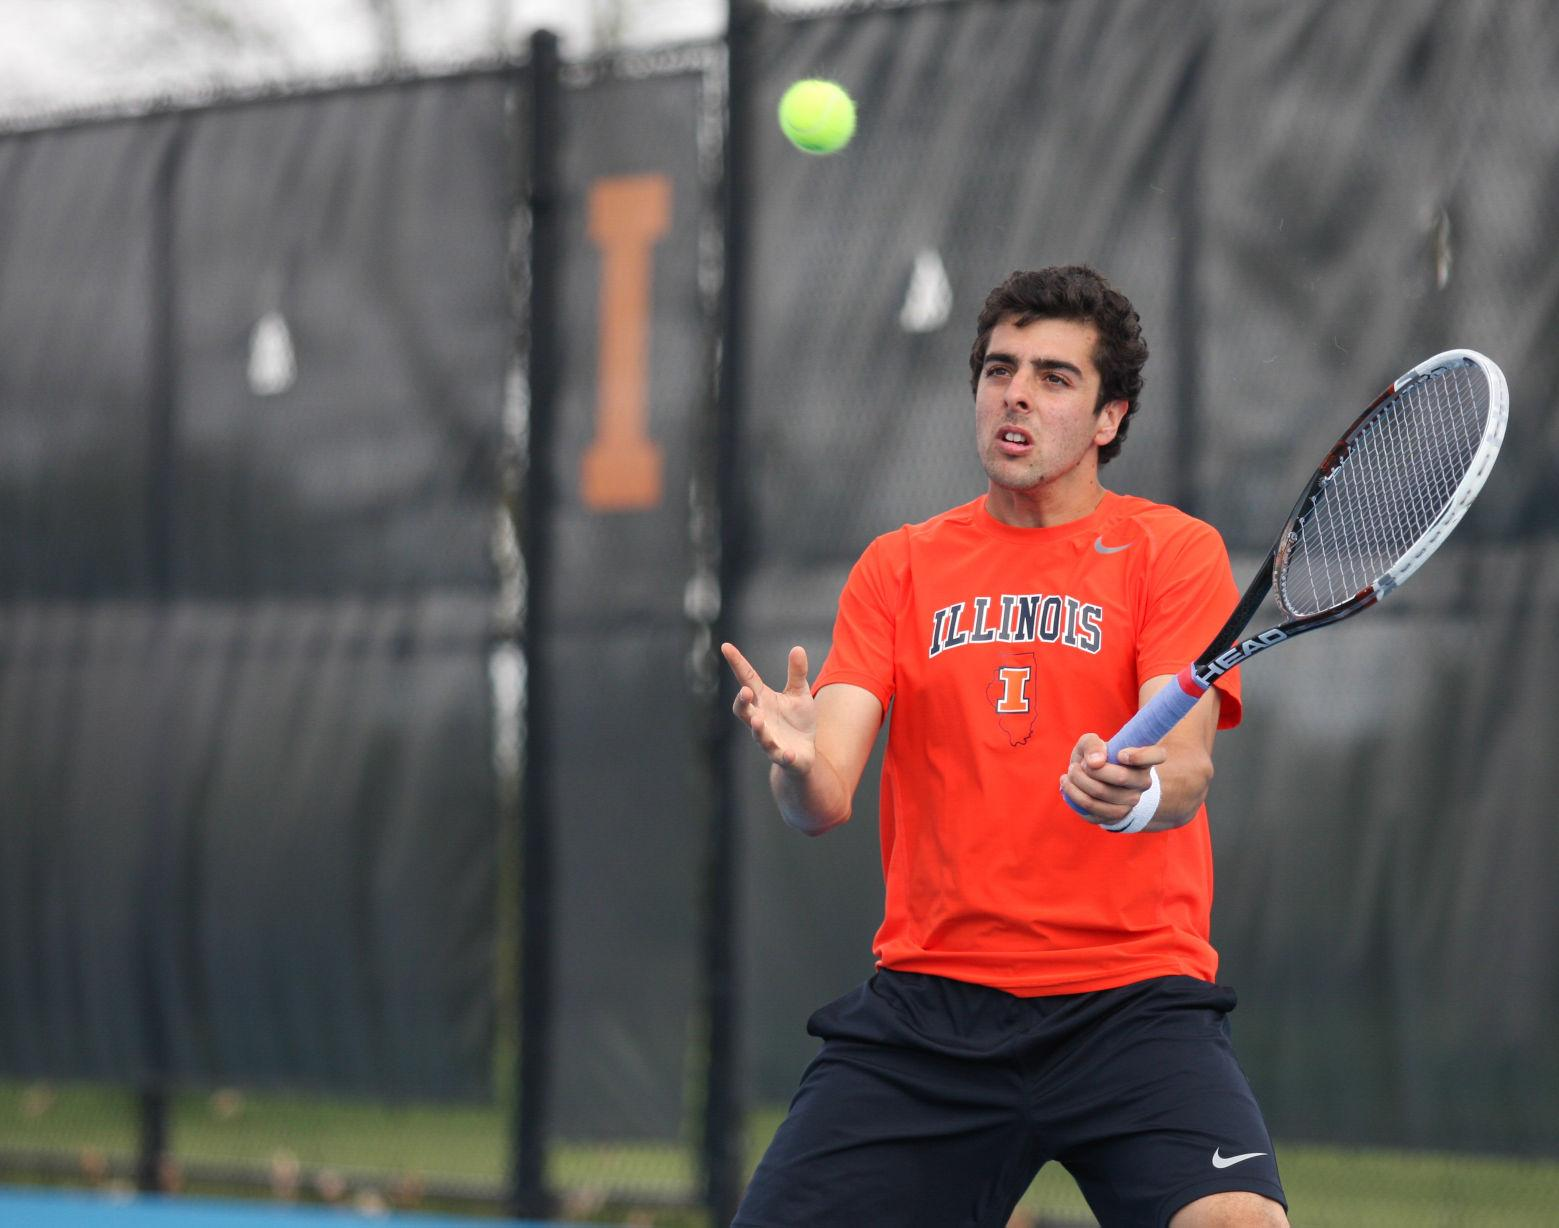 Illinois' Farris Gosea hits the ball back during the first round of NCAA Tennis Regionals against Ball State University at Khan Outdoor Tennis Complex on Friday, May 9, 2014. The Illini won 4-0.